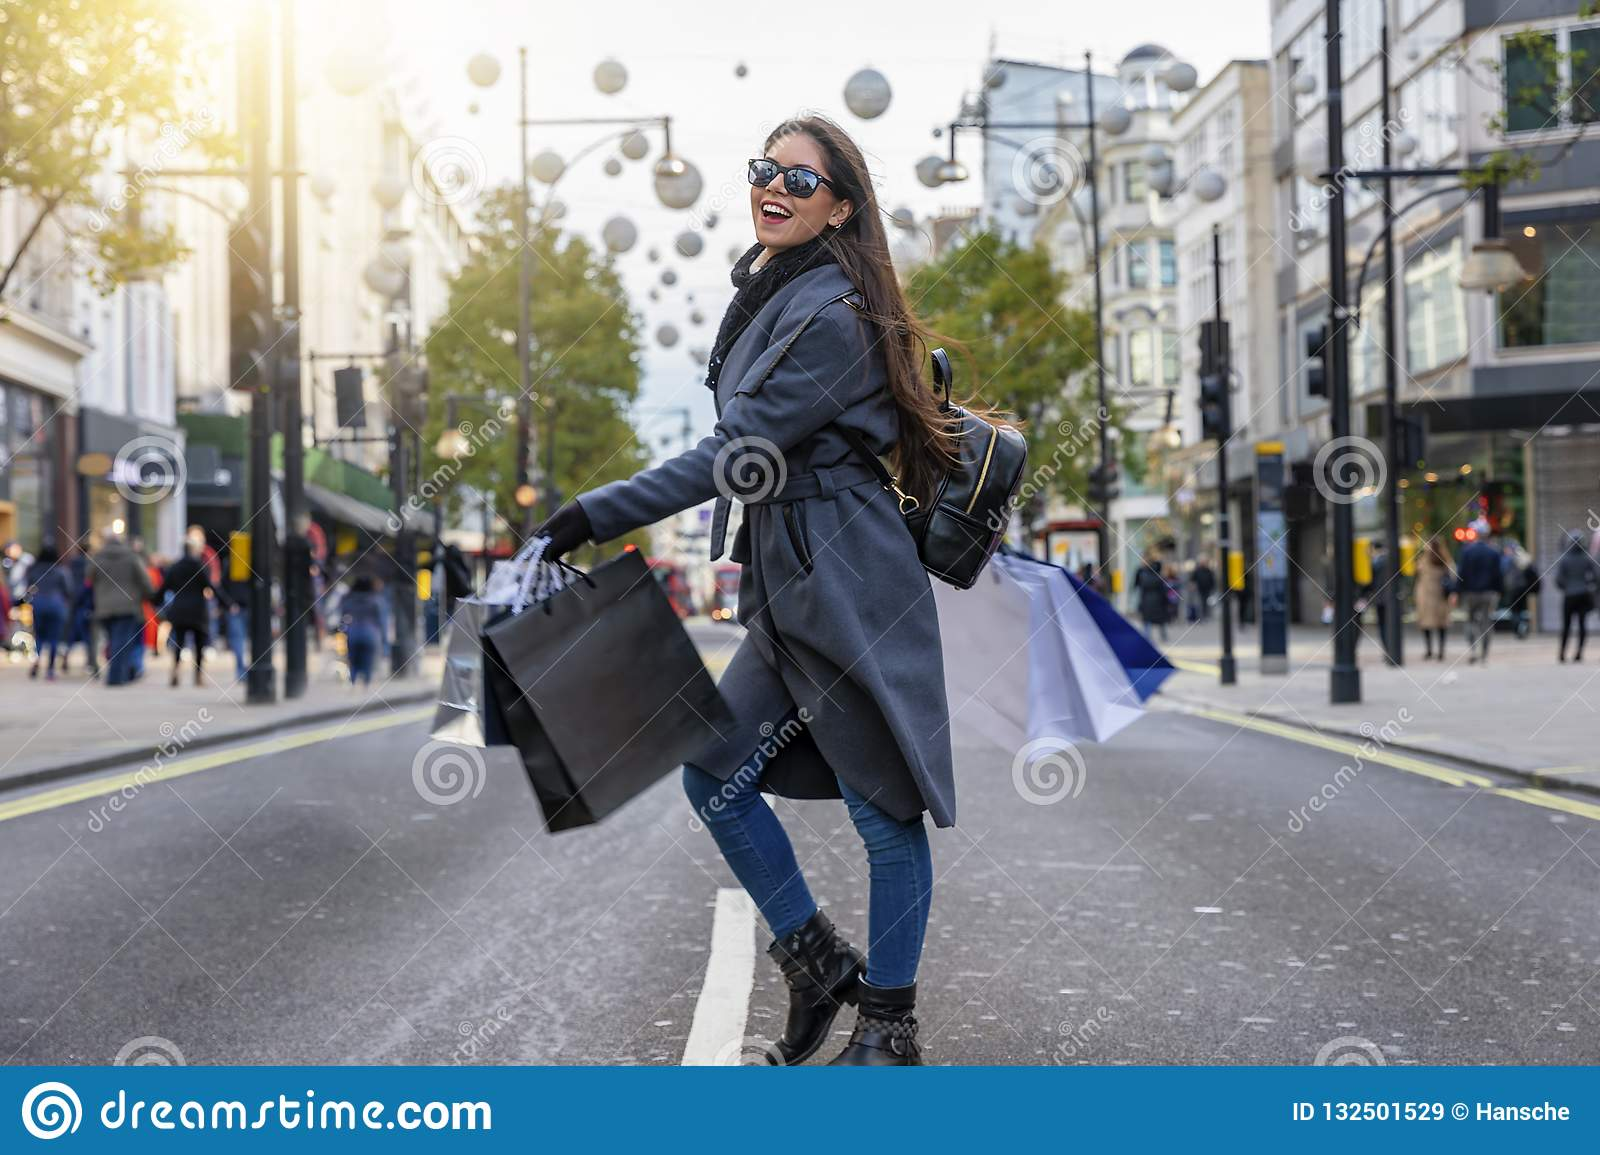 Fashionista woman on a shopping tour at the Oxford Street in London